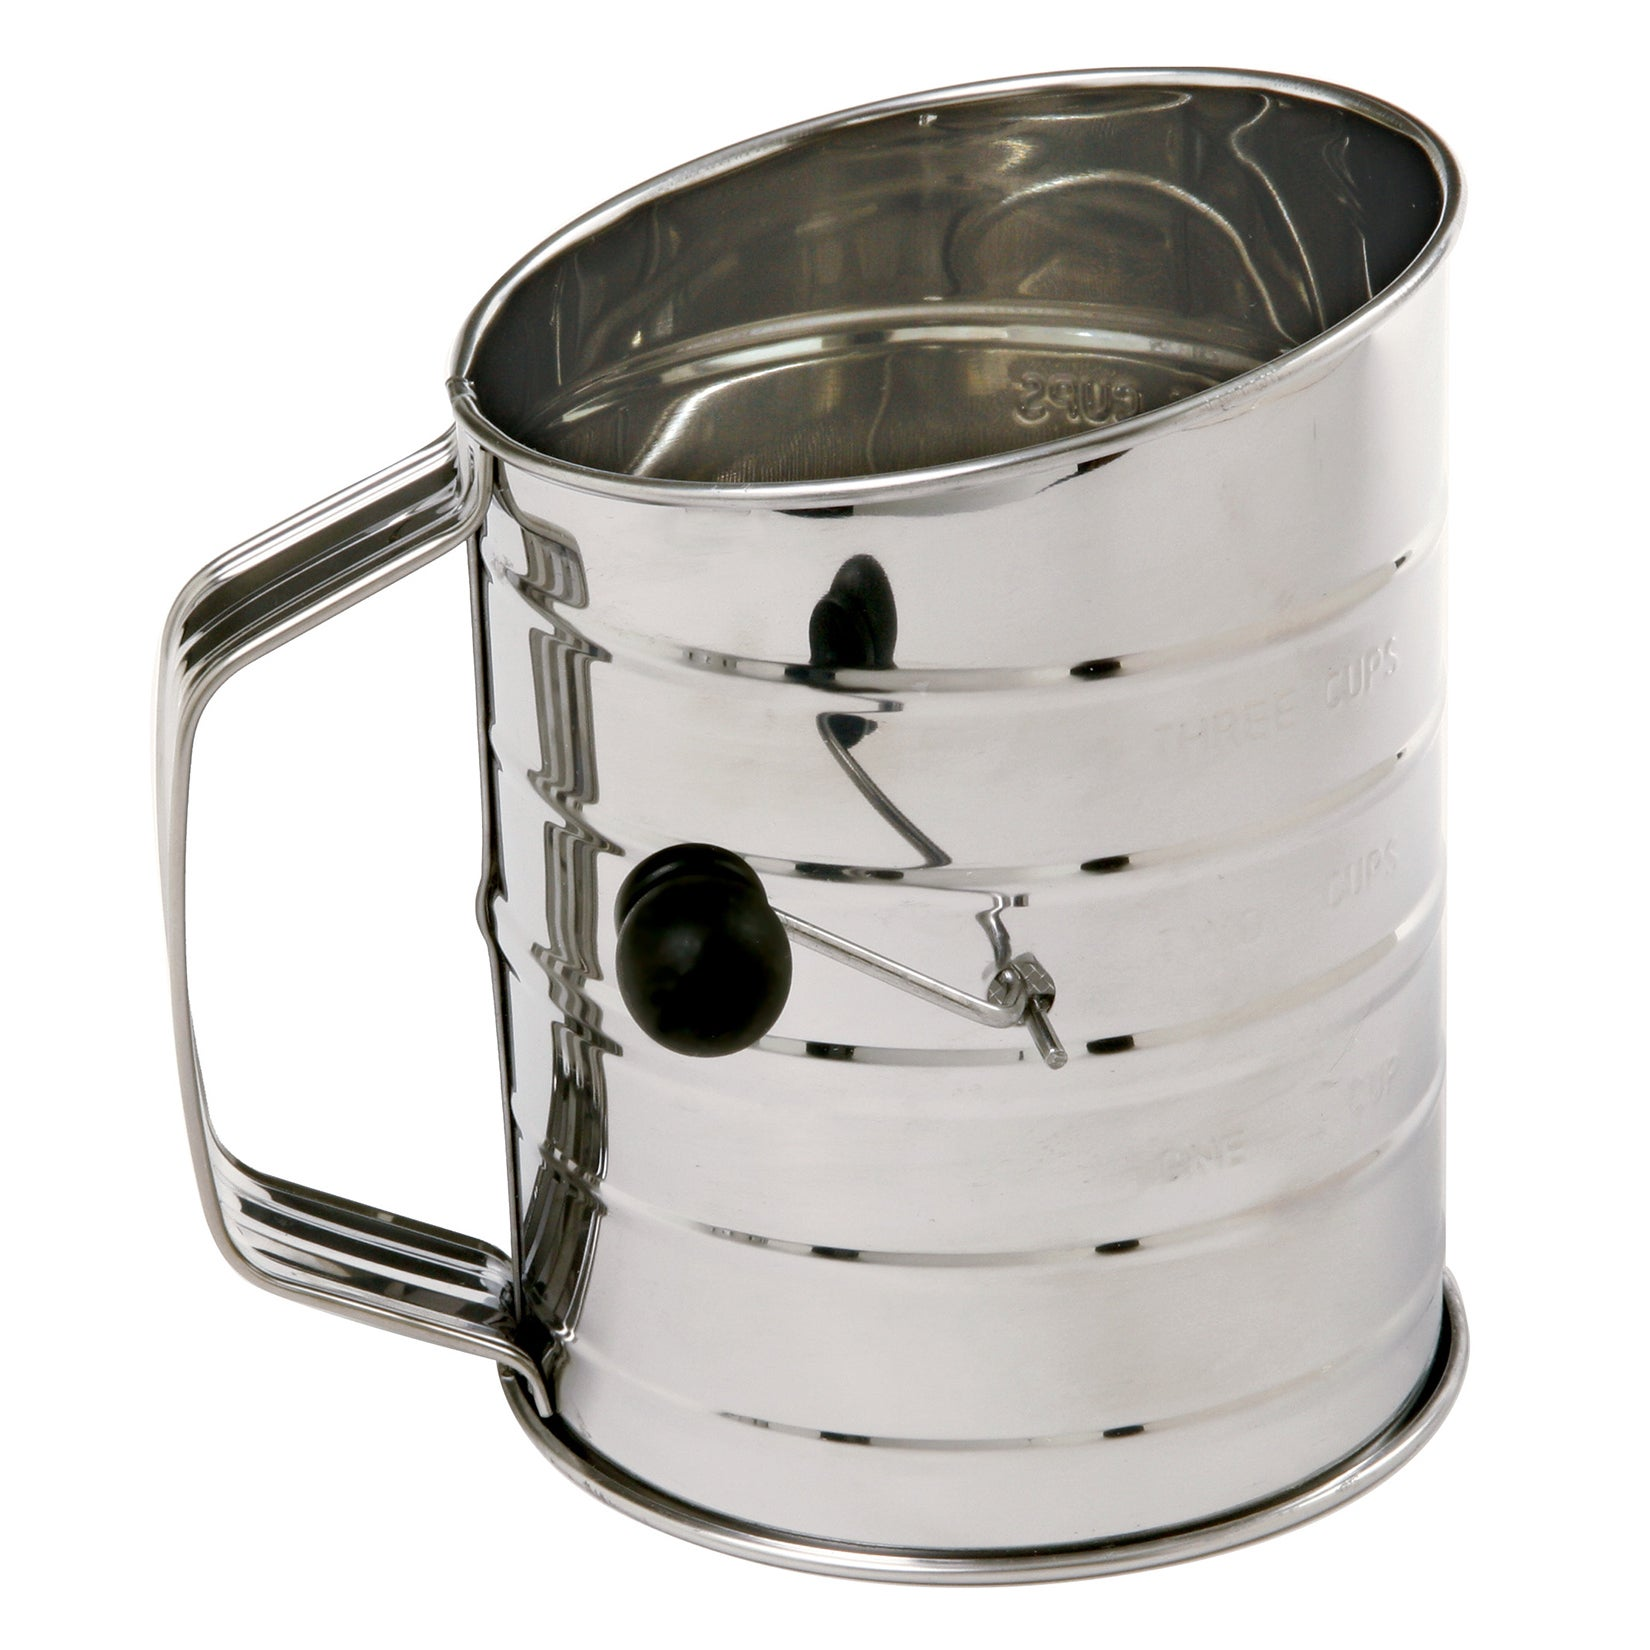 Norpro 136 3 Cup Stainless Steel Flour Sifter (Flour Sift...